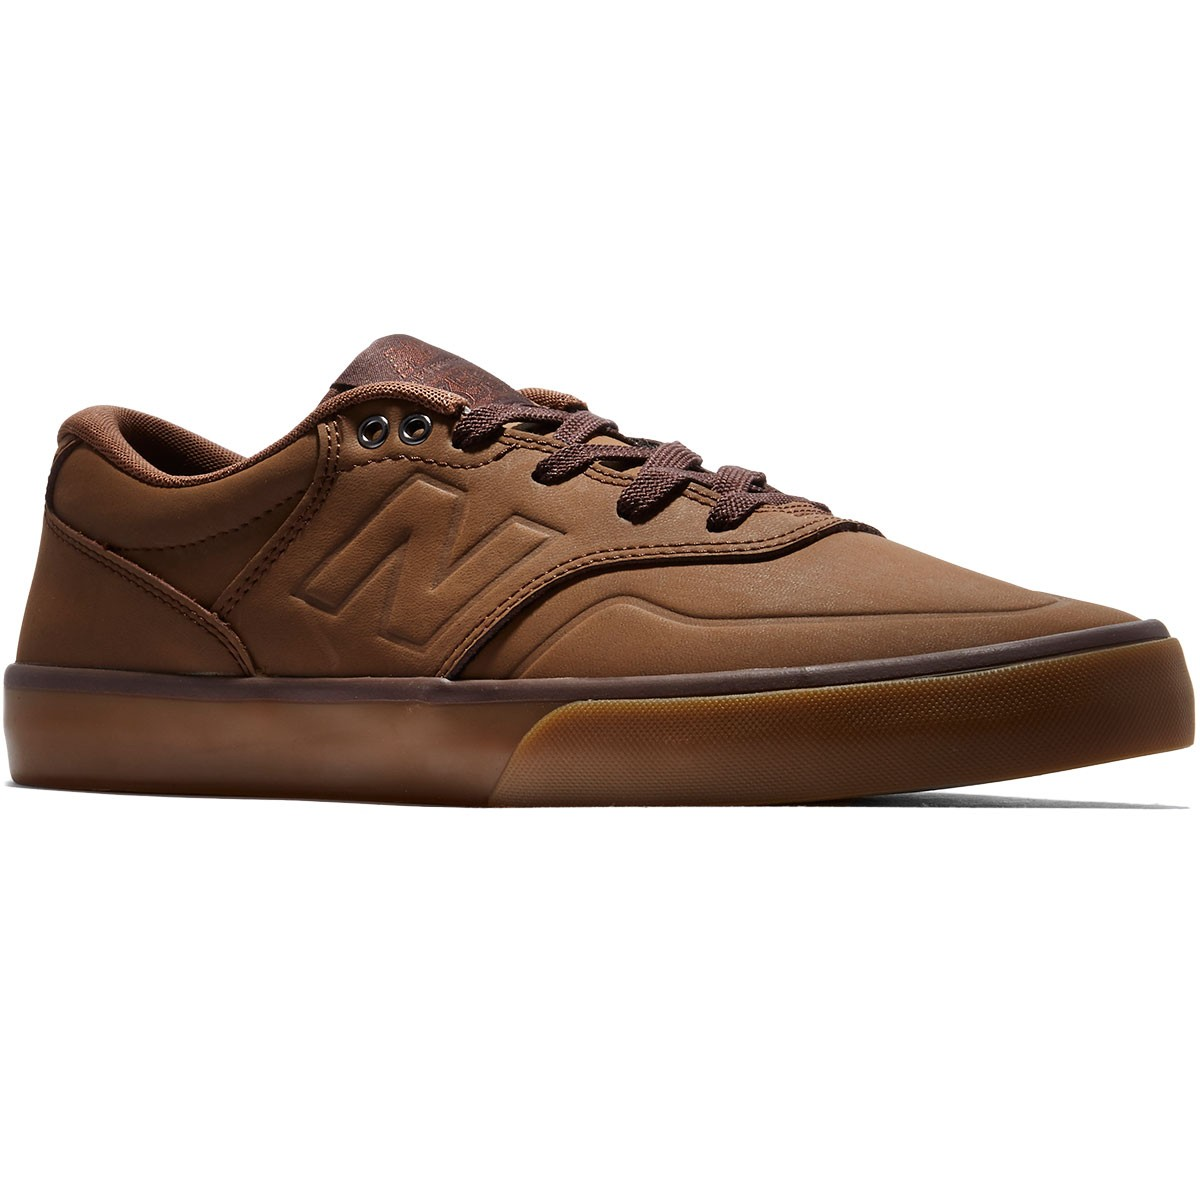 New Balance Arto 358 Shoes - Saddle/Gum - 8.0